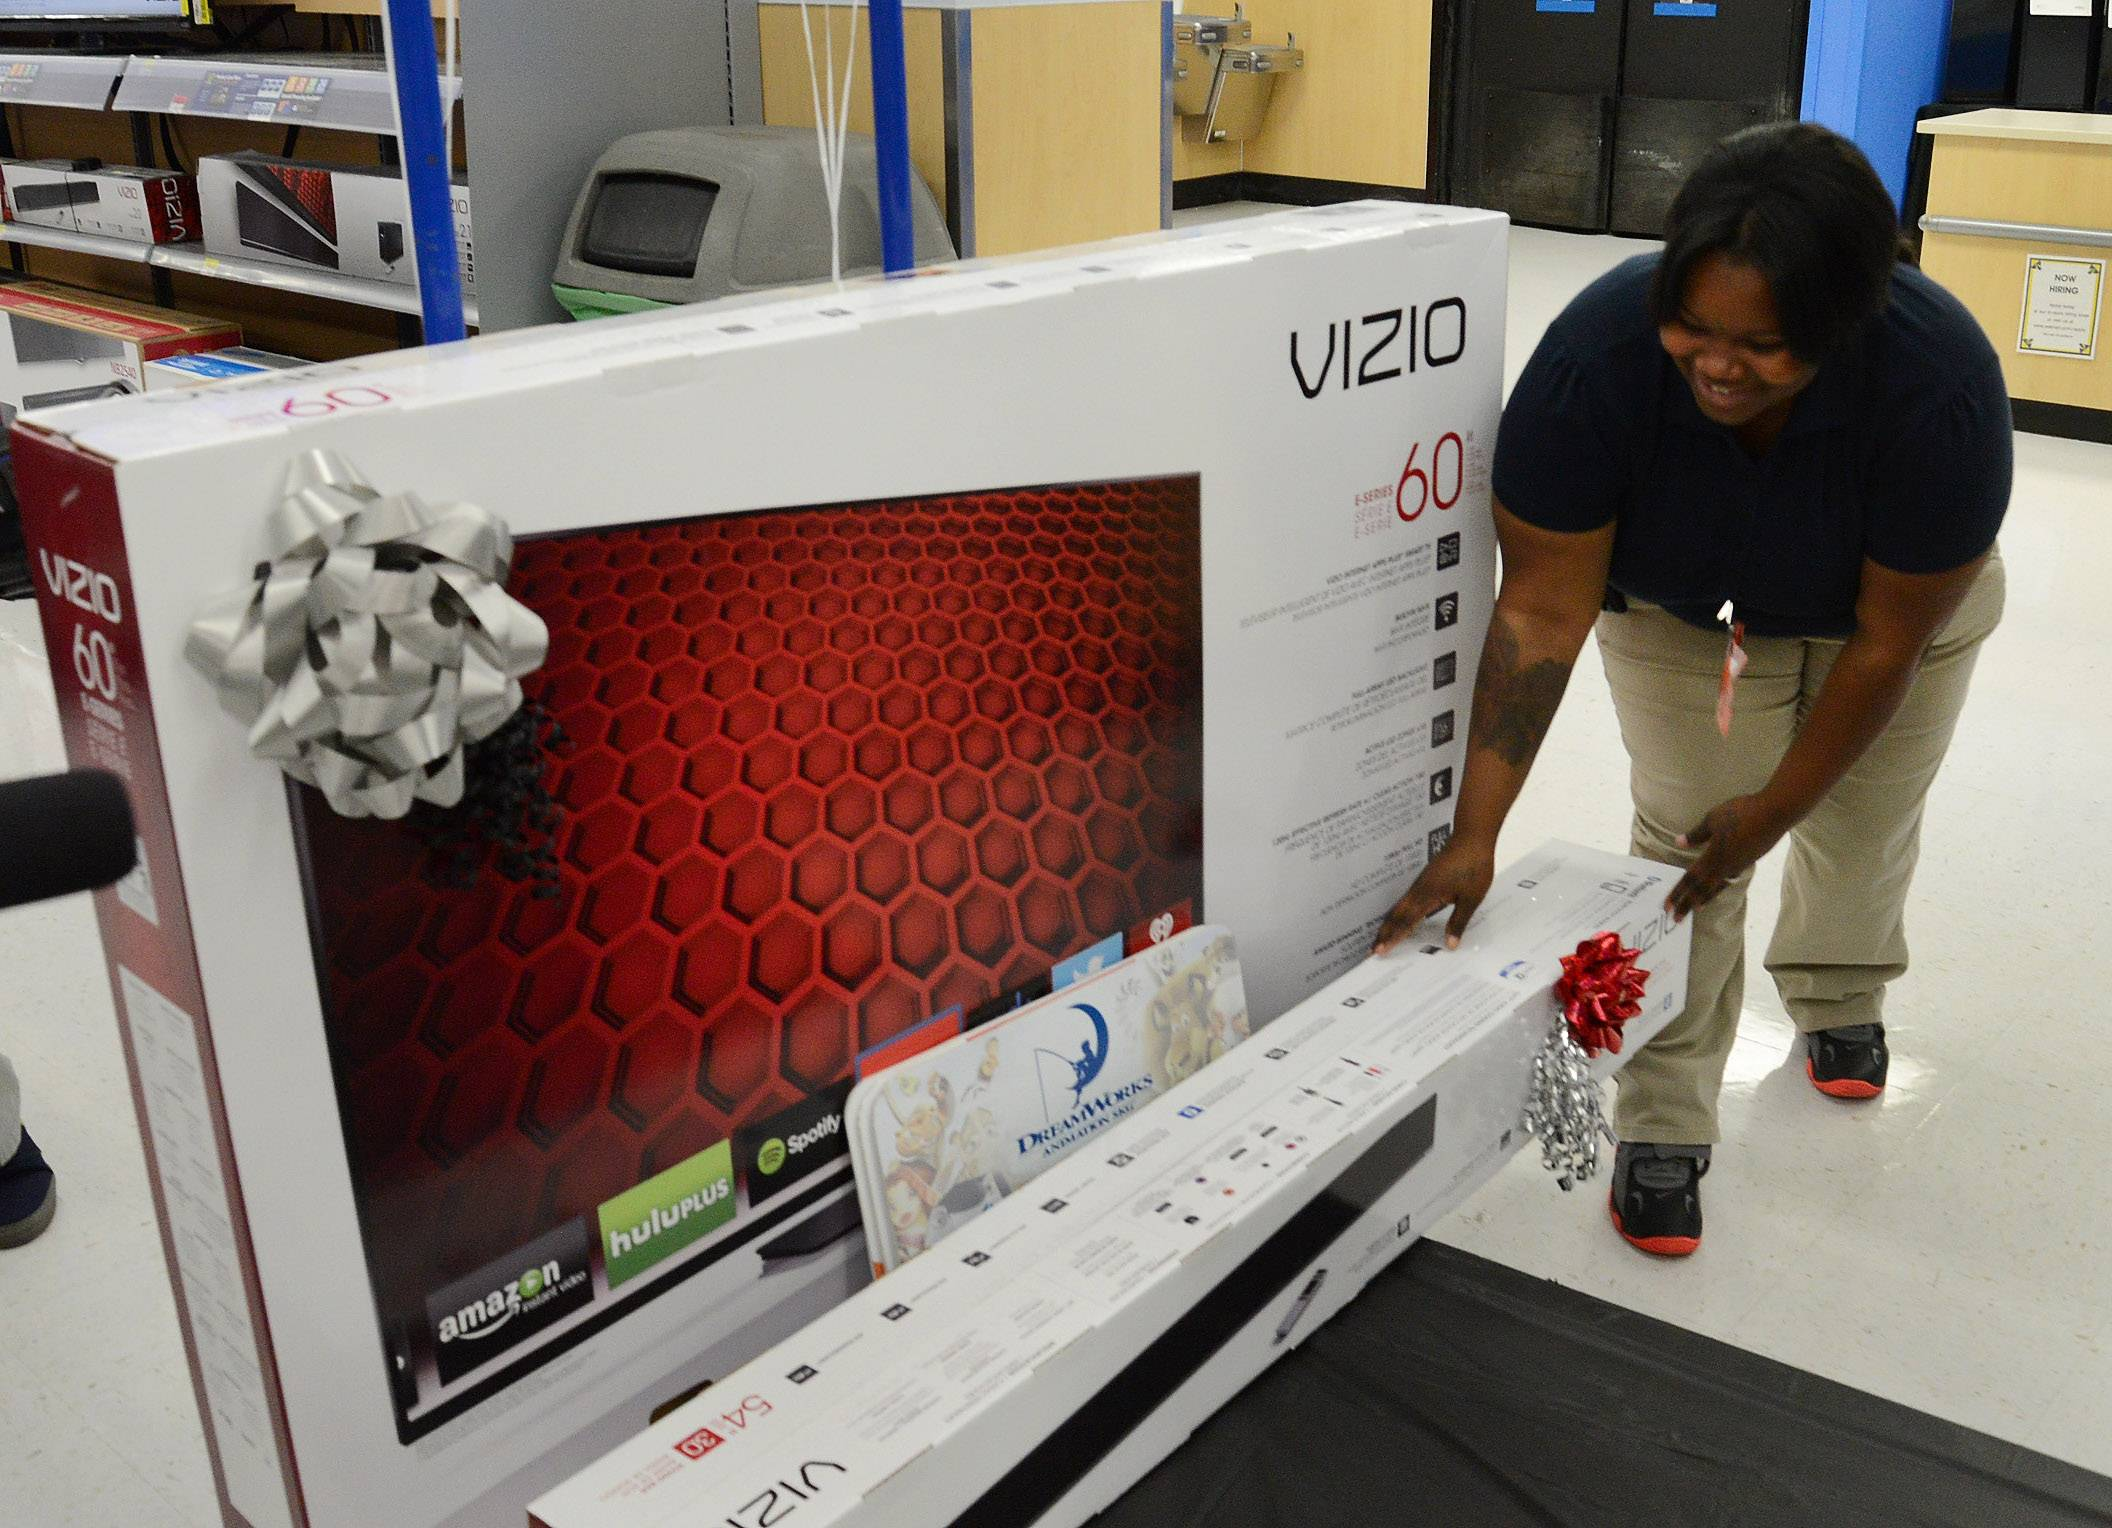 Wal-Mart employee Lorenda Carter wheels out the 60-inch Vizio TV that Michael Perrella of Wheeling is surprised with at the Wheeling Wal-Mart after his daughter Nicole's entry won him a national contest sponsored by Vizio.